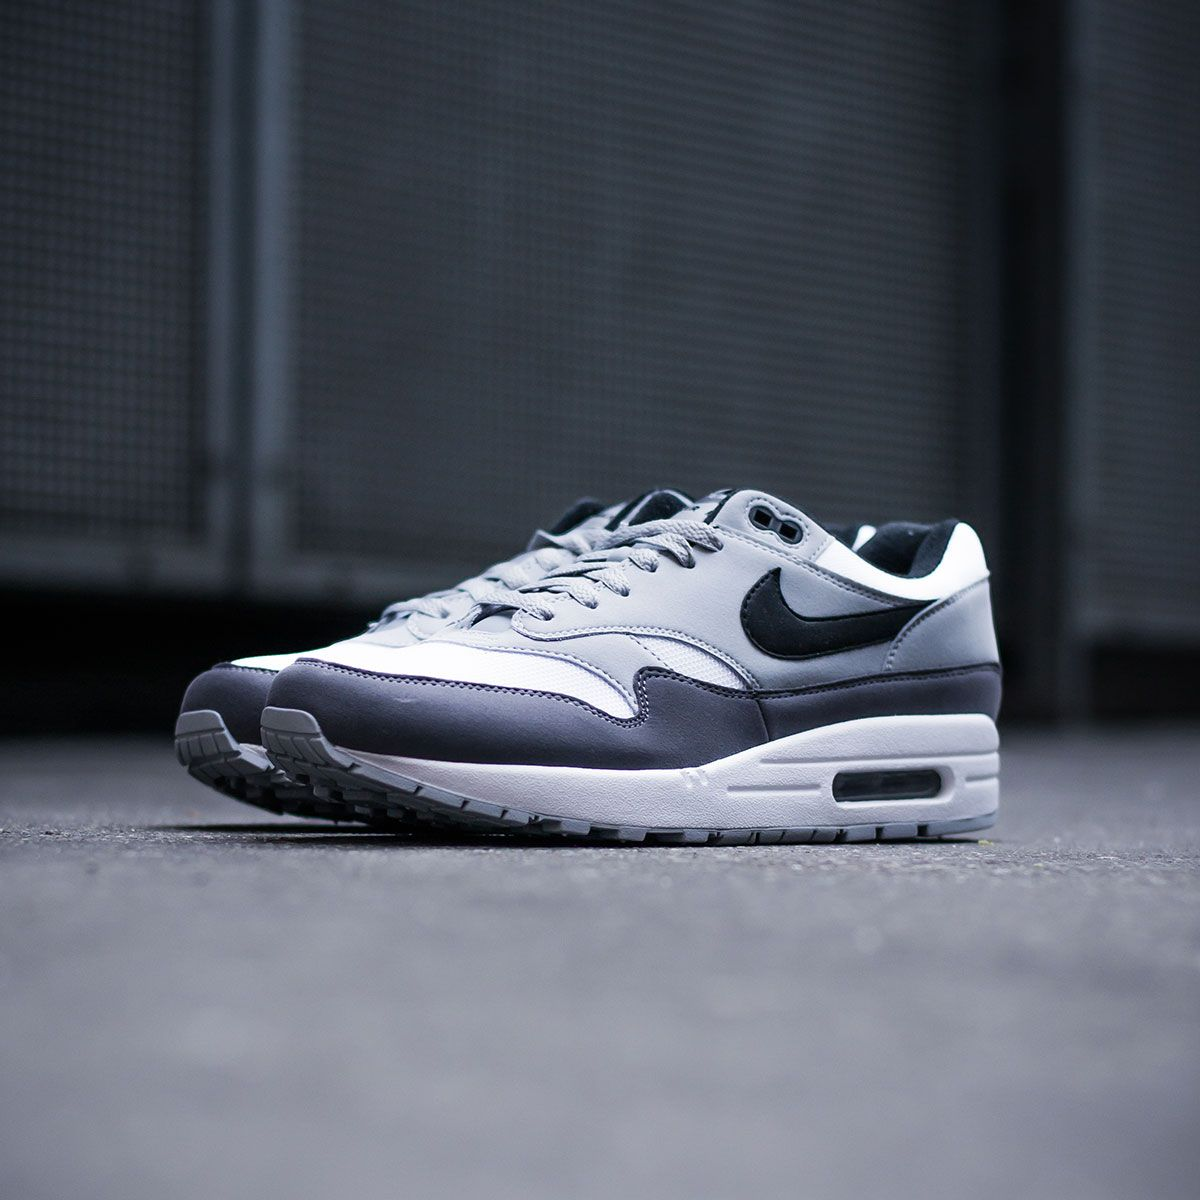 the latest 2f64a 4211b The Nike Air Max 1 is now available in a versatile white black